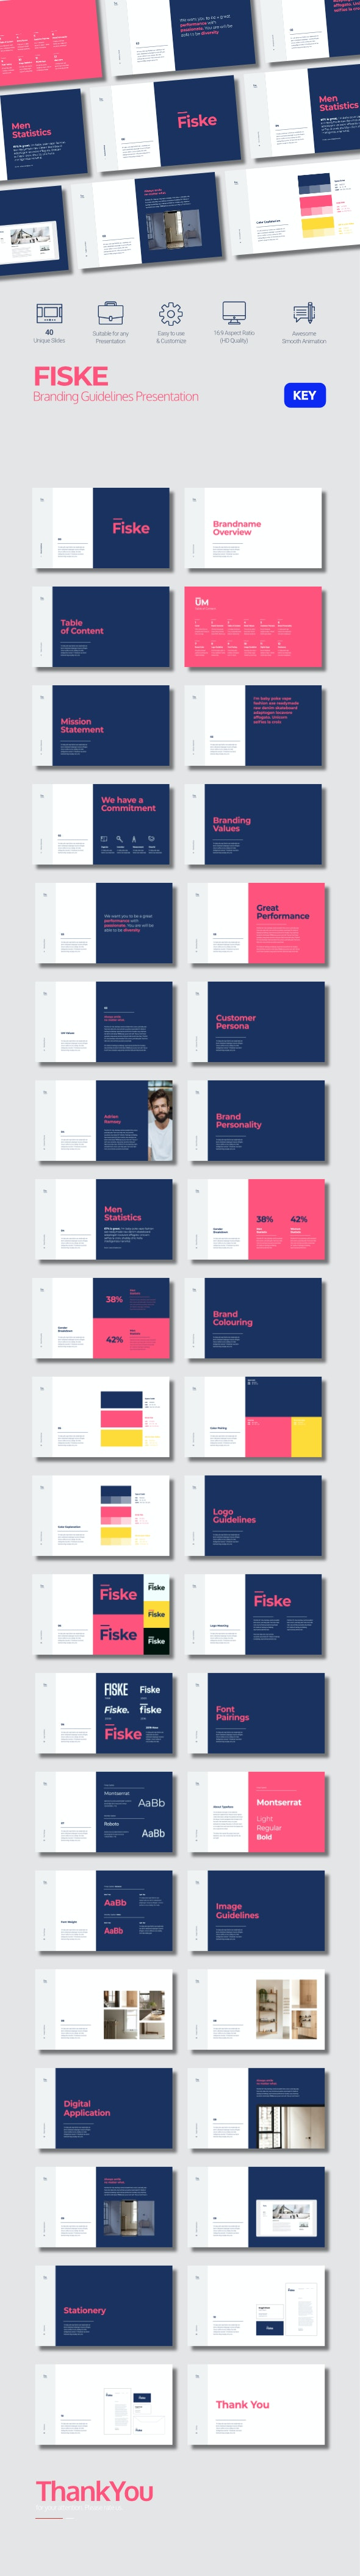 Clean Minimalism Presentation Keynote - Business Keynote Templates